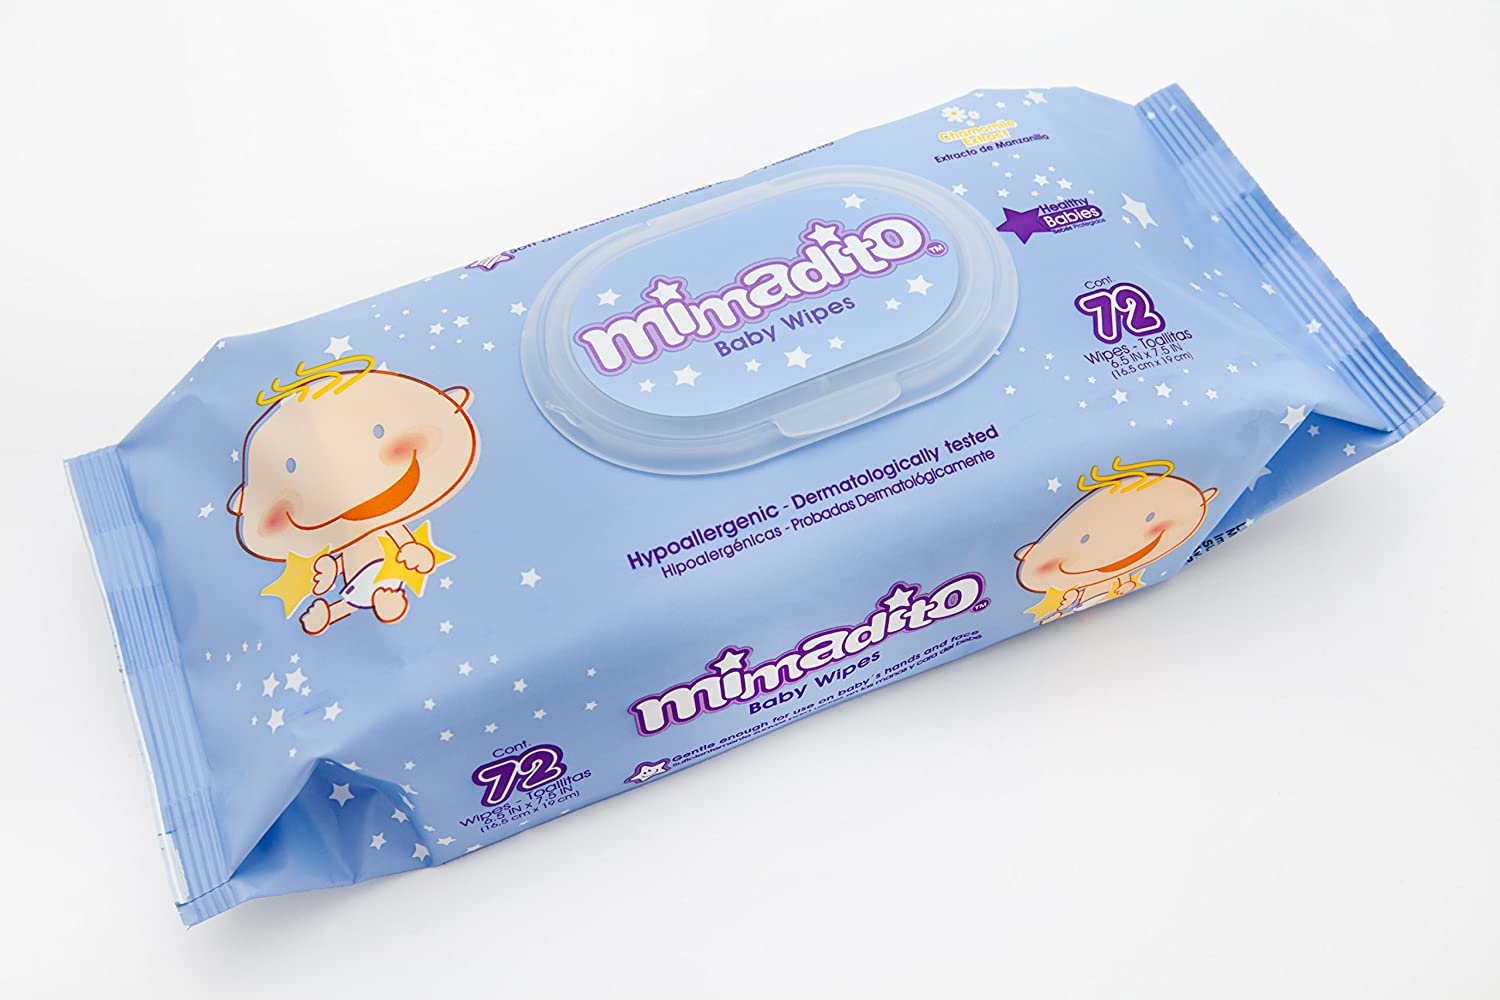 Amazon.com : Mimadito Chamomile - Lightly scented baby wipes (864 wipes: 12 packages of 72 wet wipes) : Baby